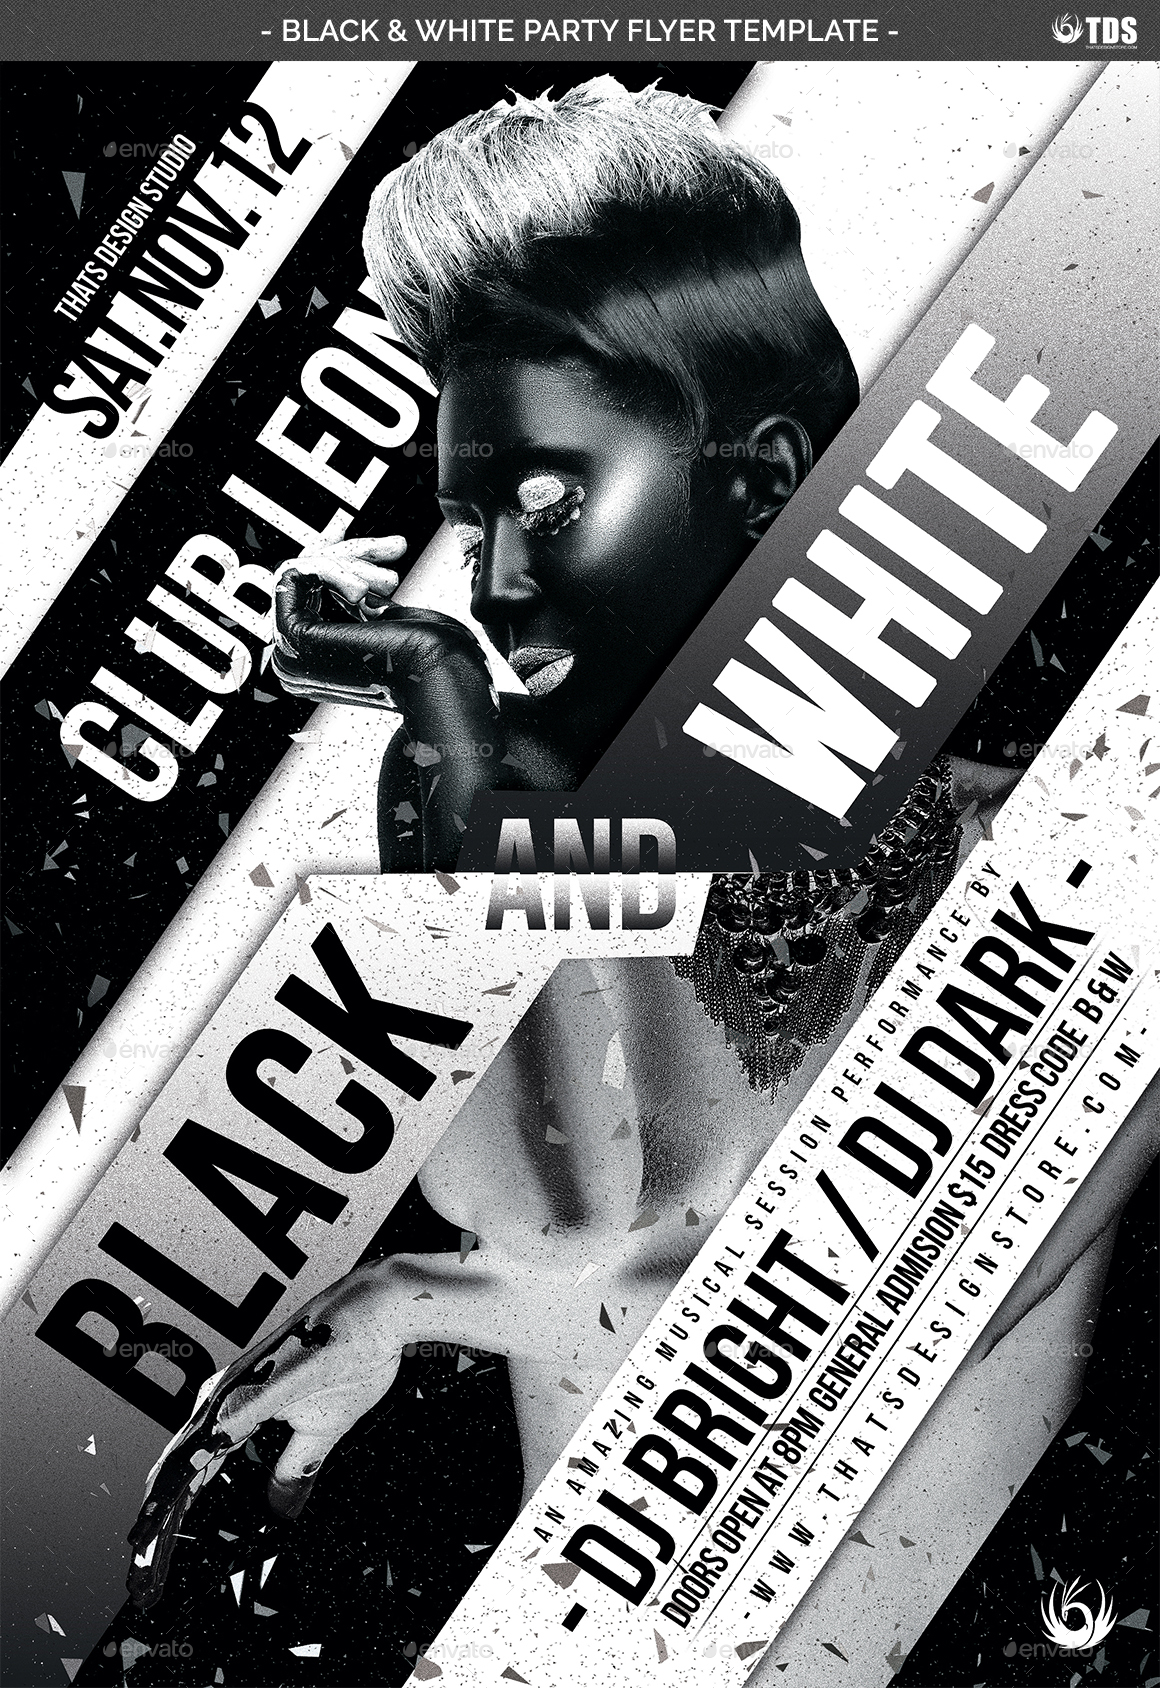 Black and White Party Flyer Template by lou606 – Black Flyer Template